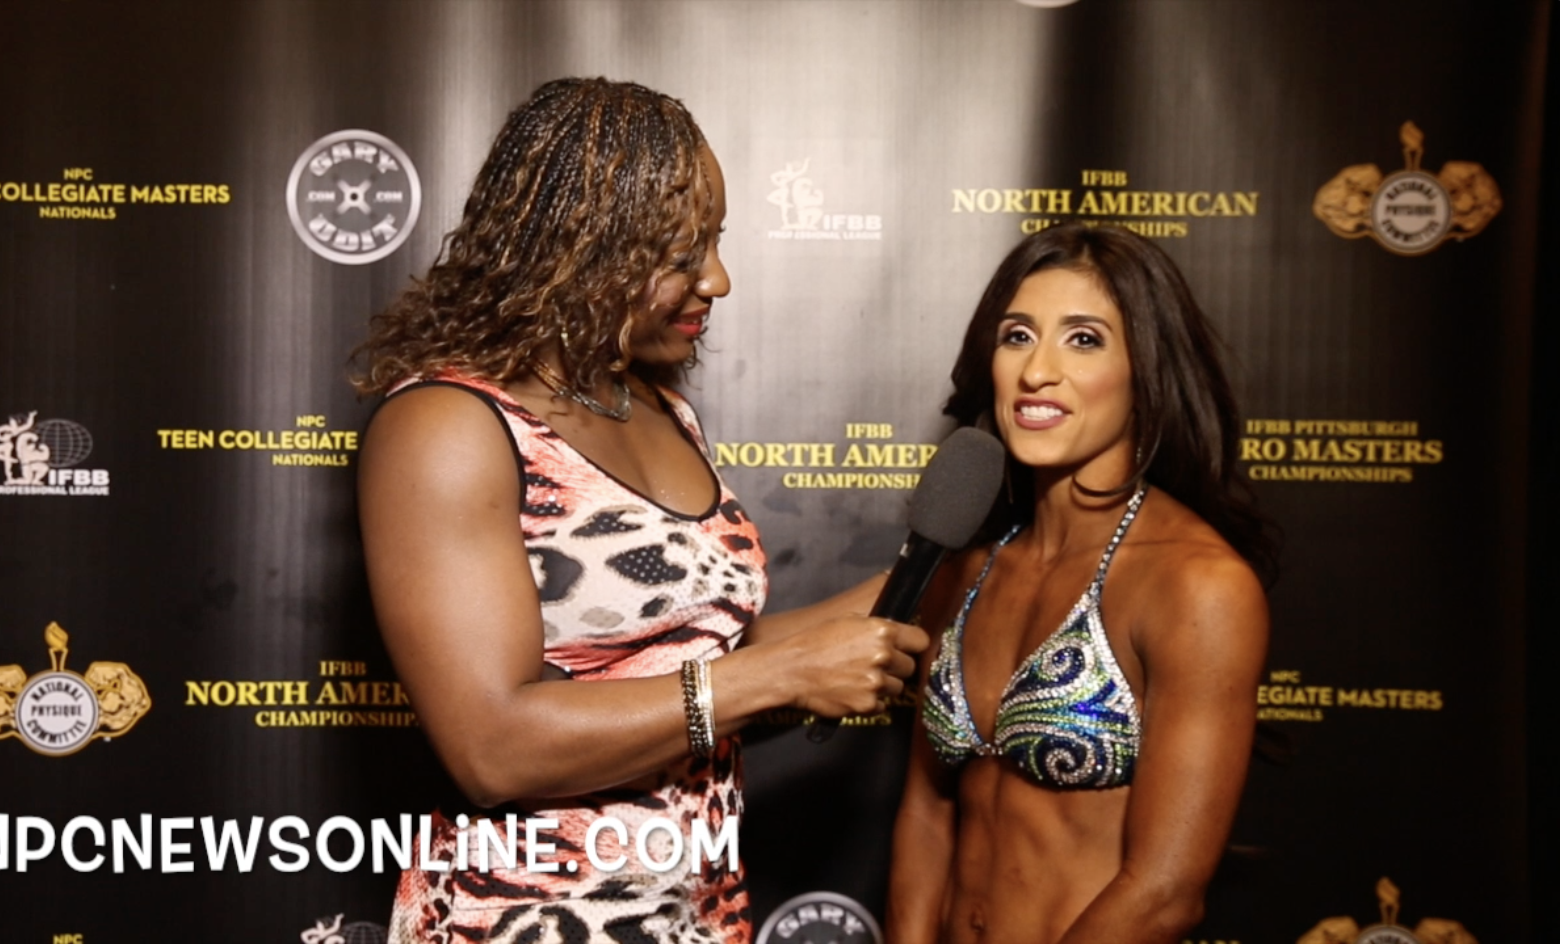 2017 IFBB North American Championships Women's Fitness Open Overall Winner Carolina Frausto Interview